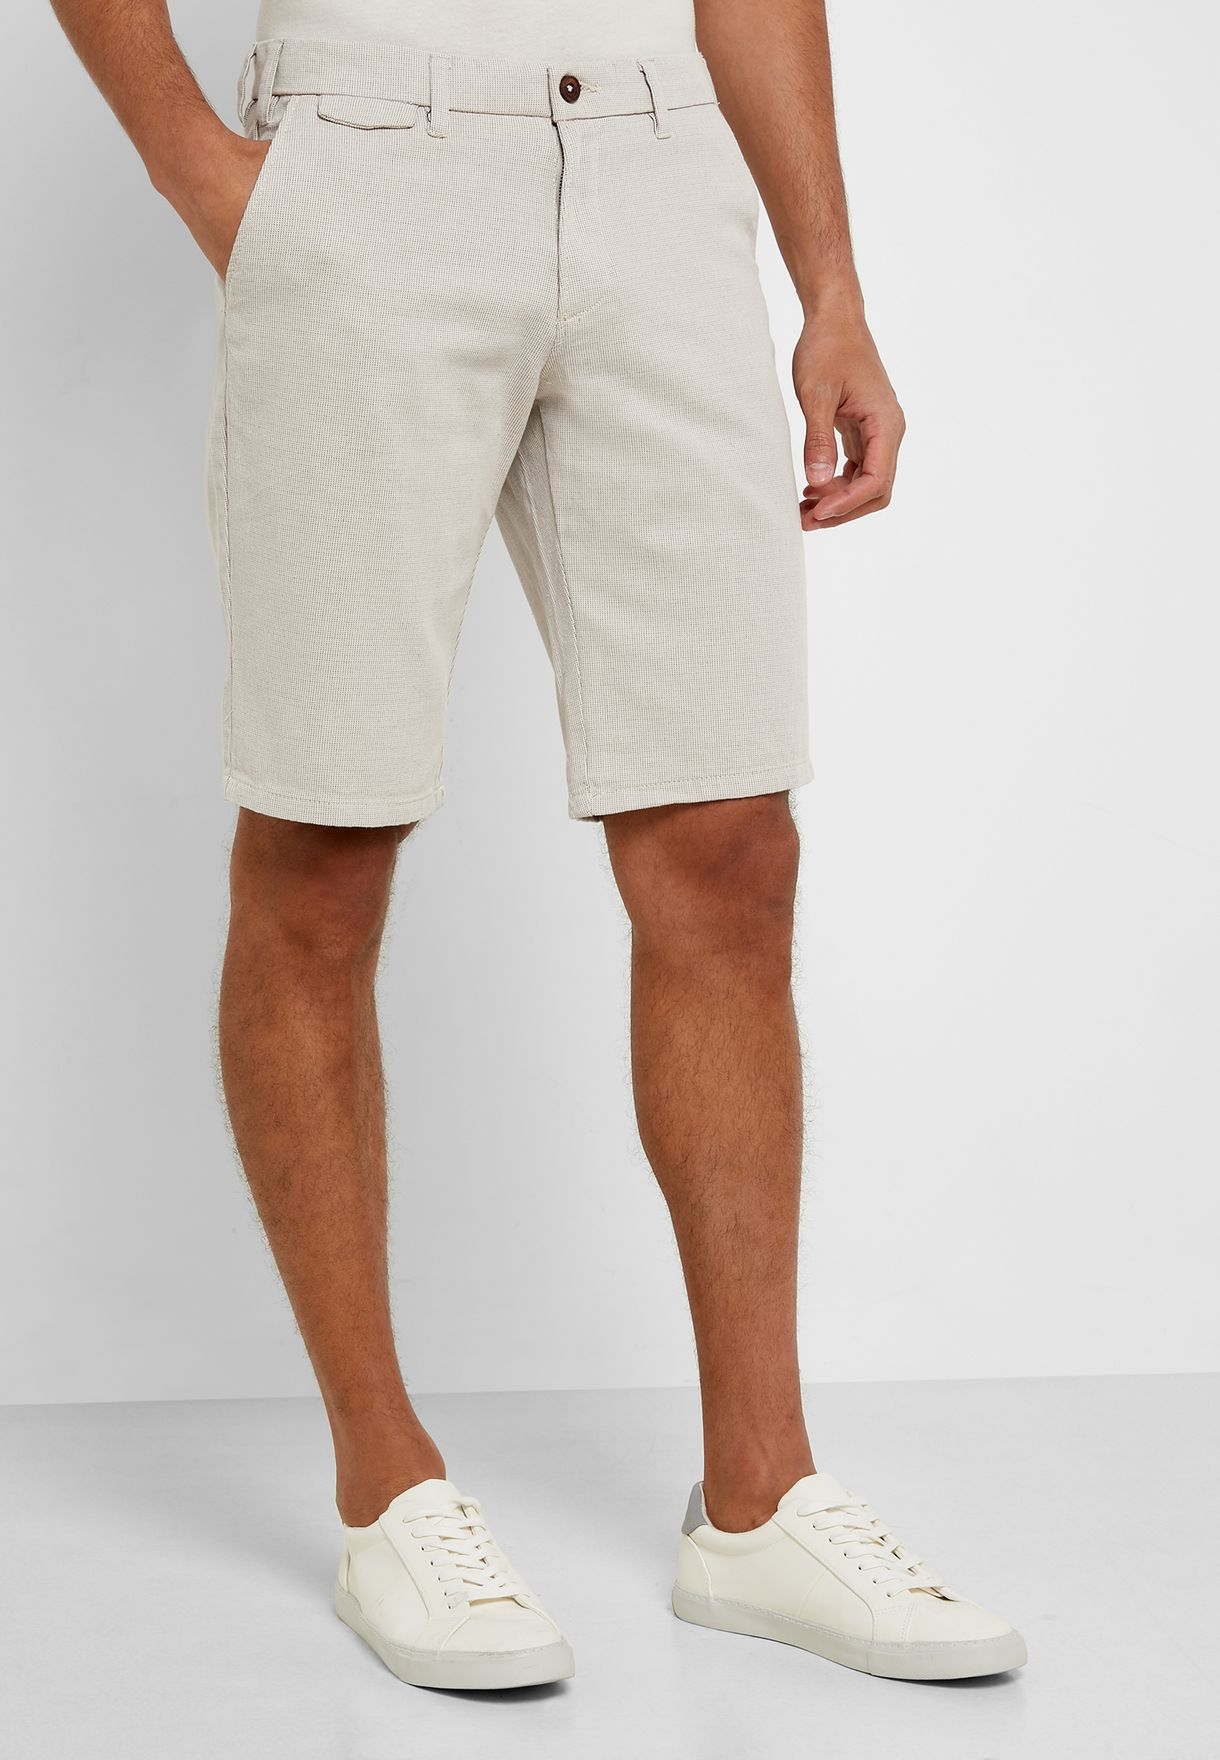 Structural Shorts